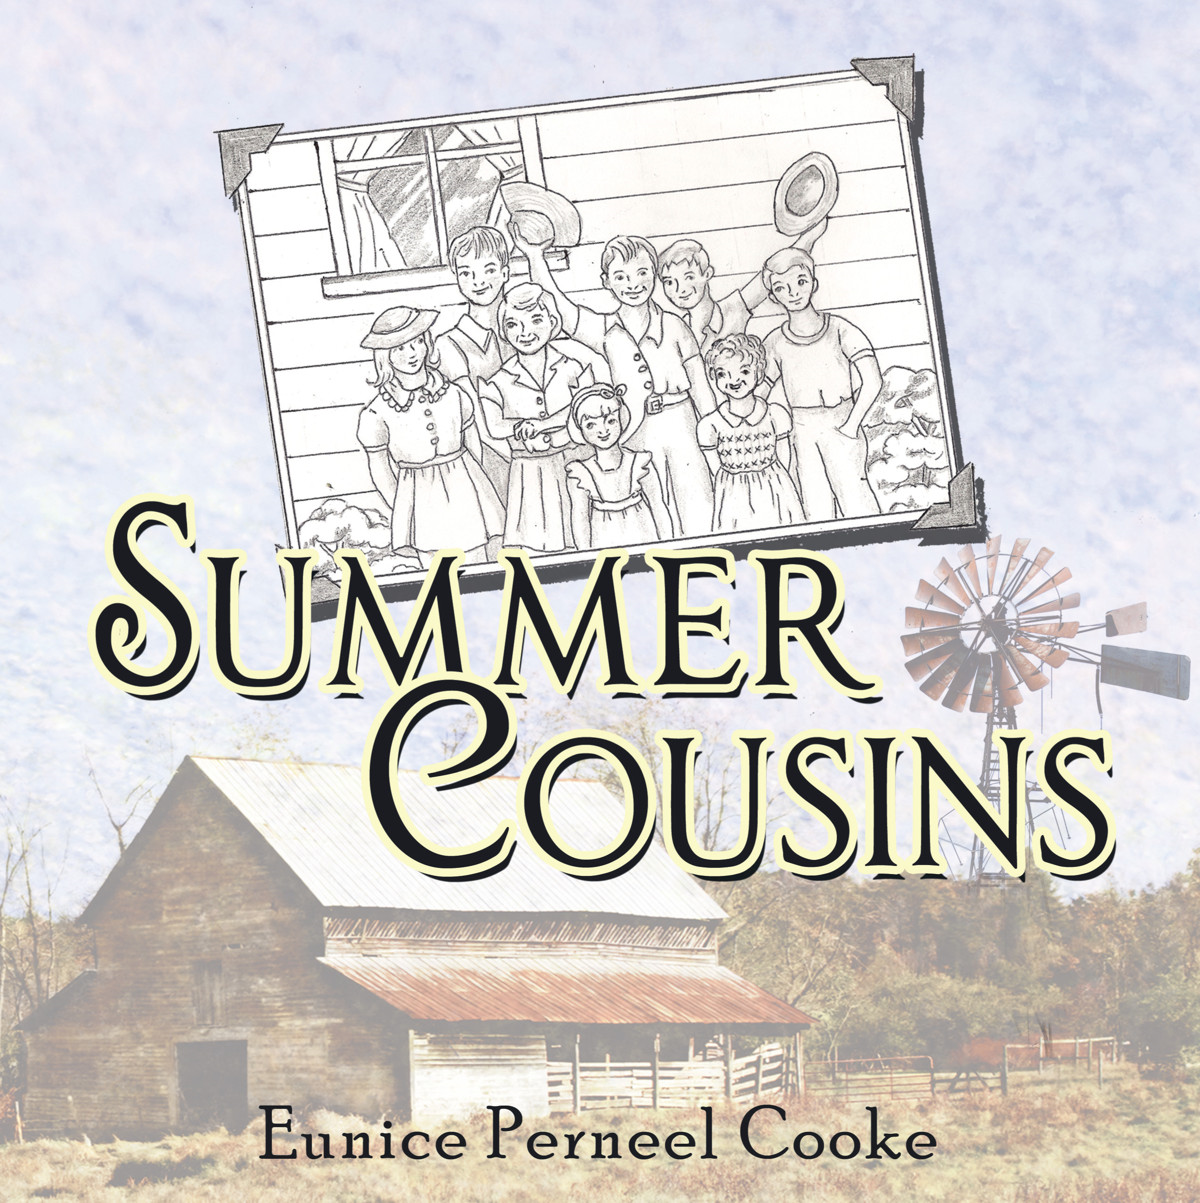 Summer Cousins By: Eunice Perneel Cooke